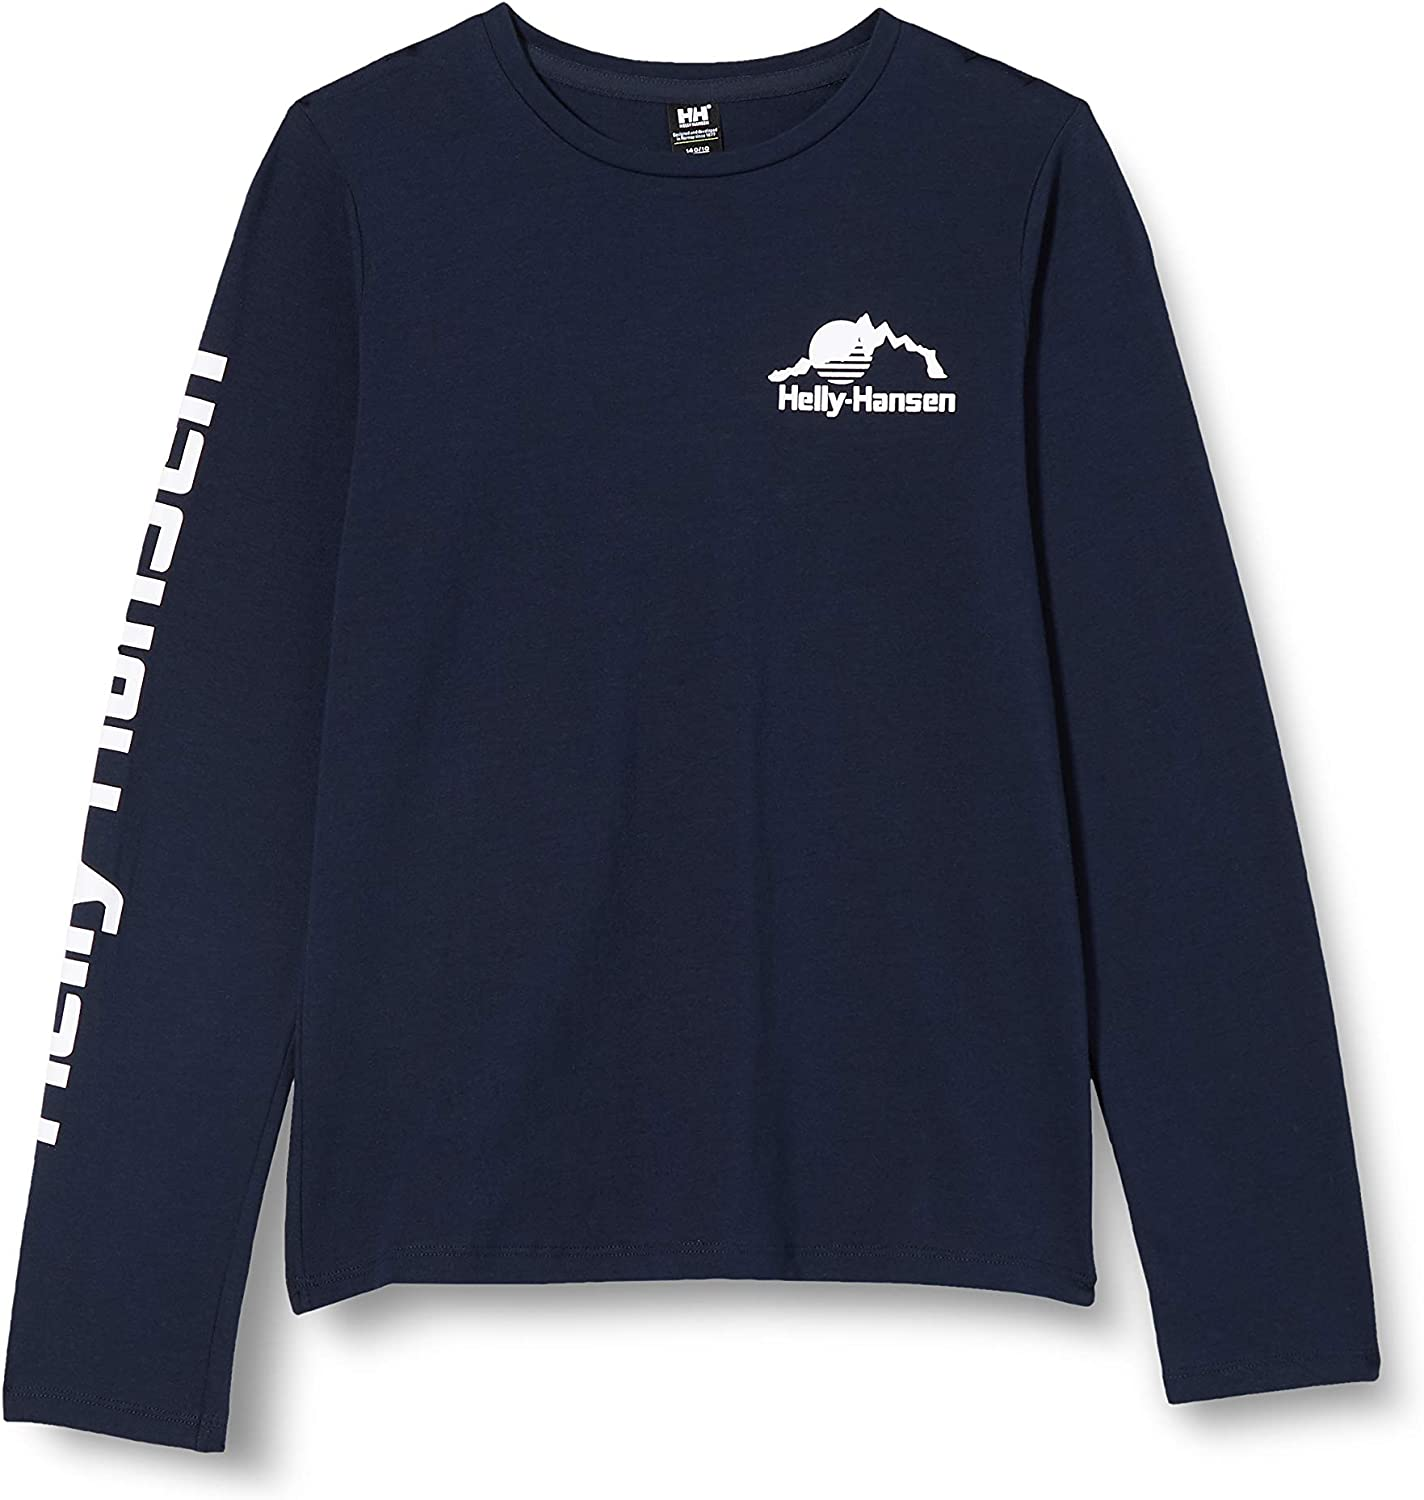 Helly-Hansen Unisex-Child Printed Hh Long-Sleeve T-Shirt Max 78% OFF Max 76% OFF Graphic